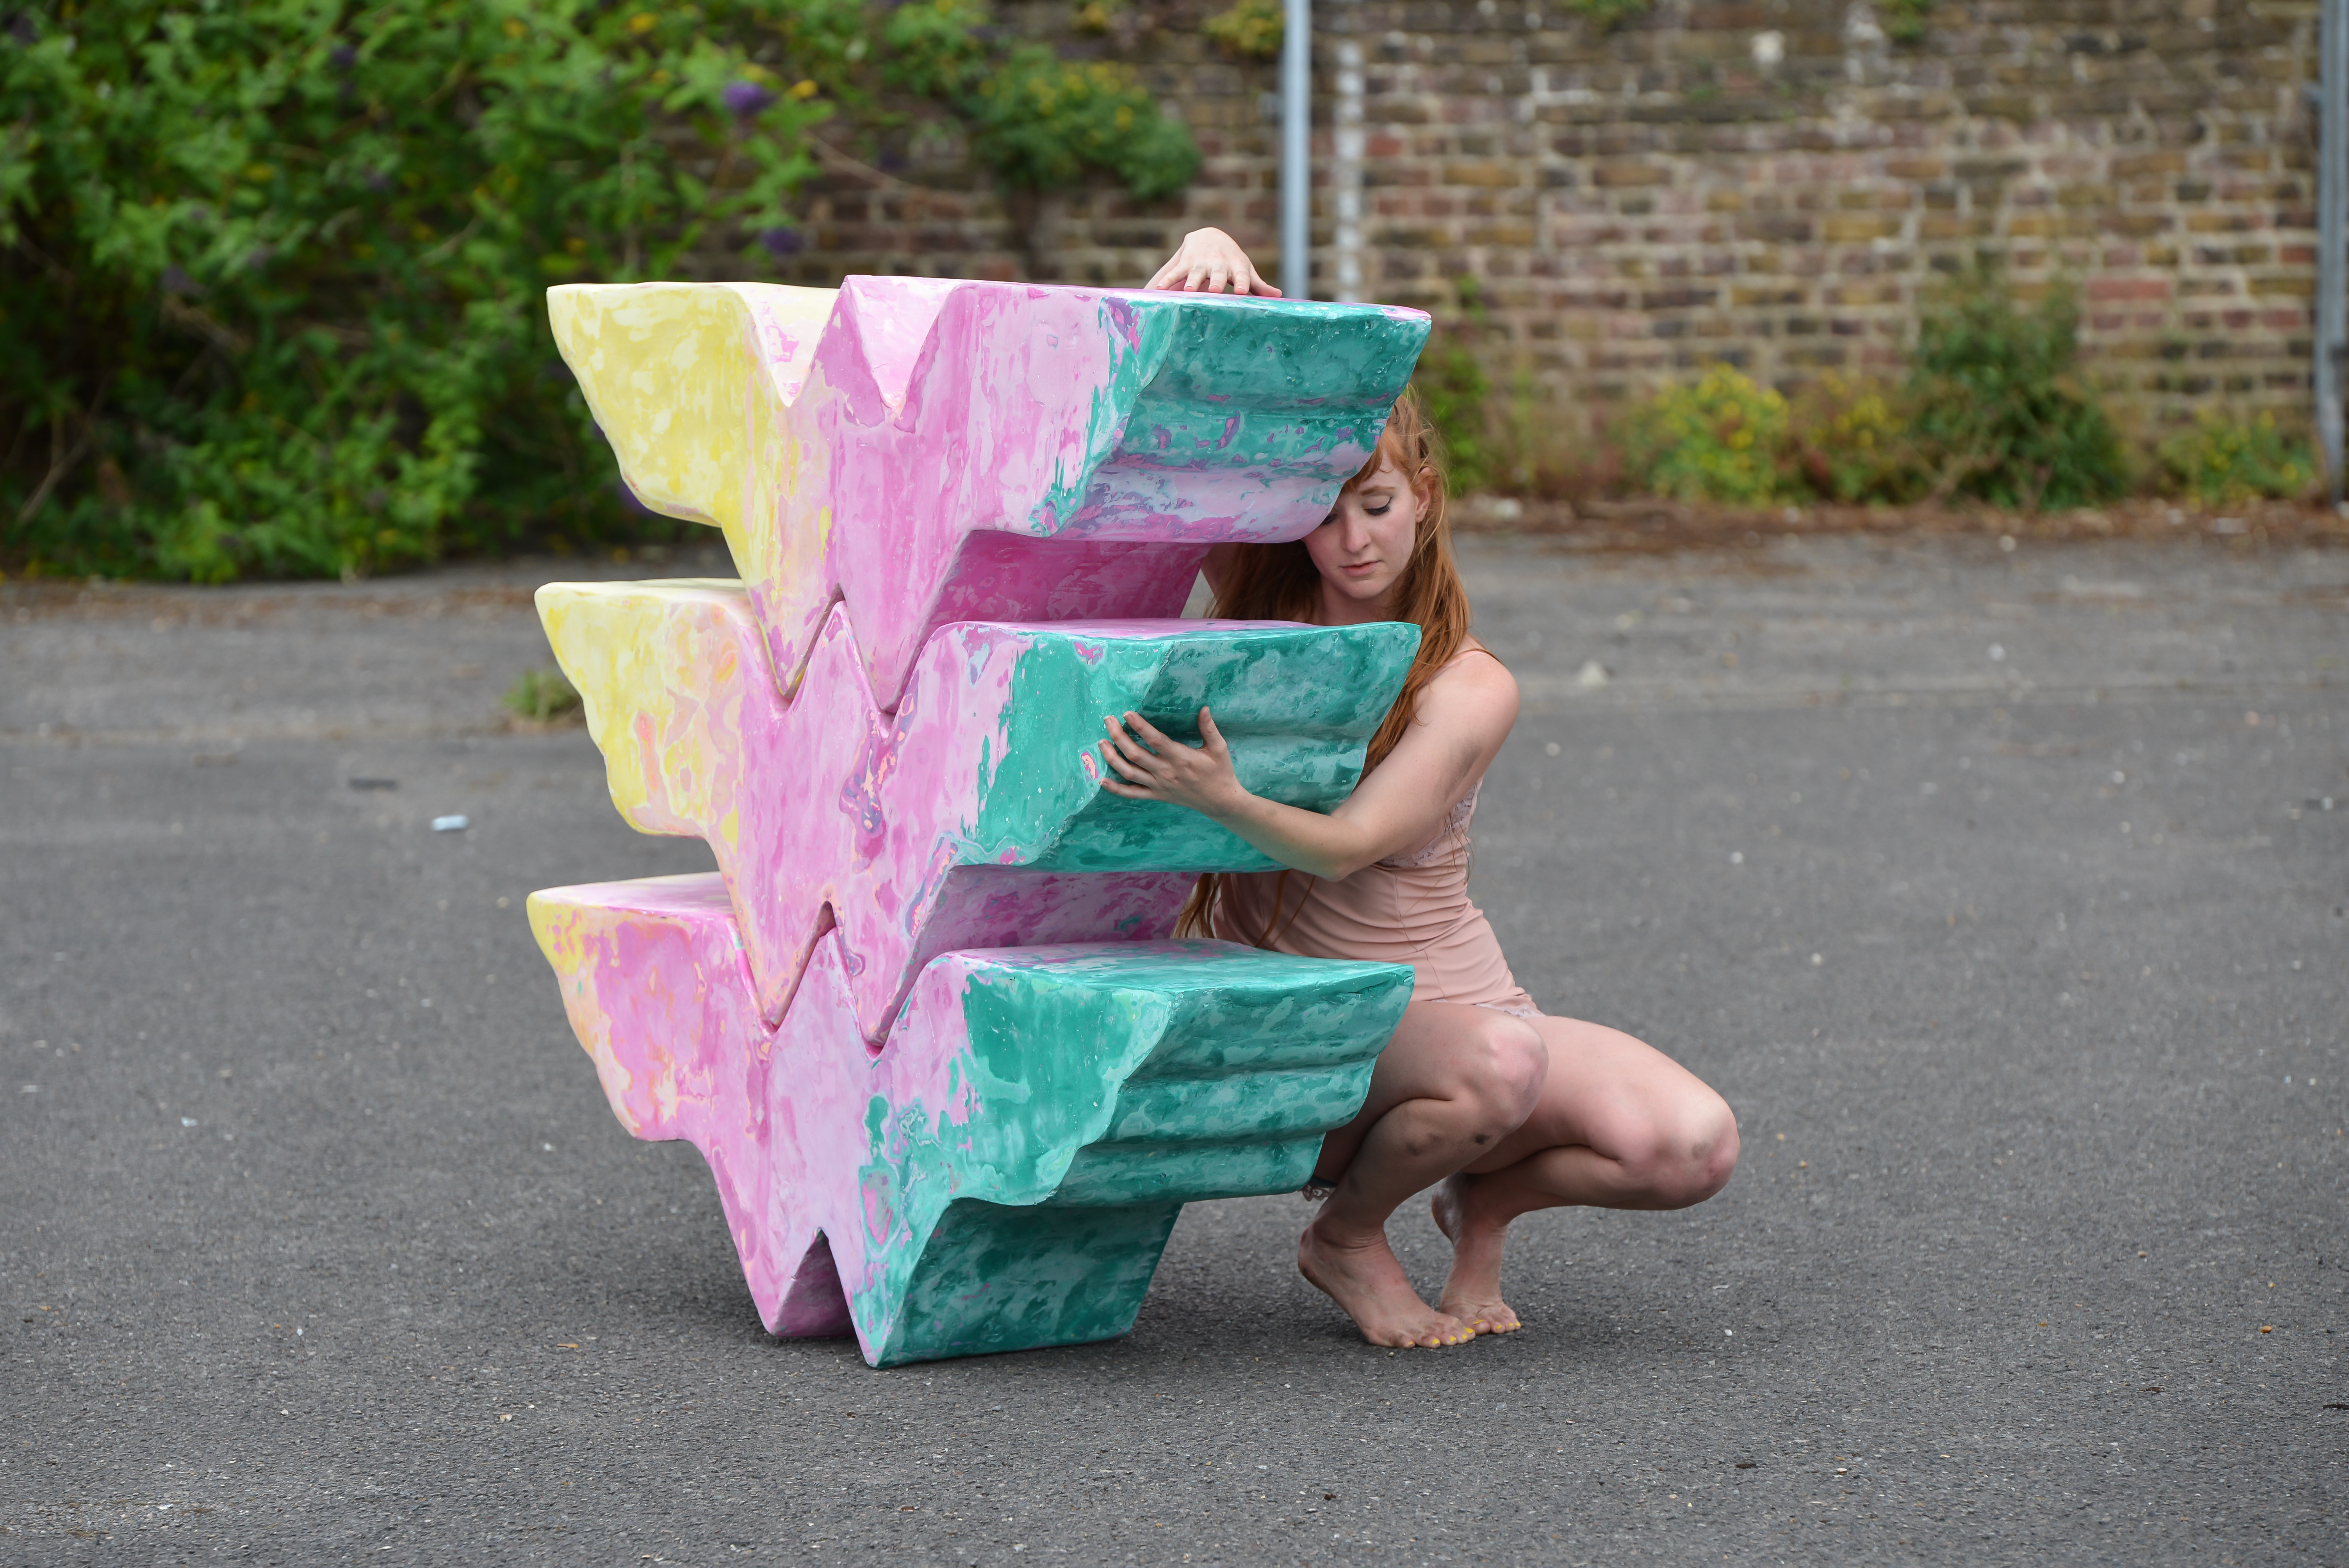 The photo shows Emma, a white individual with long red hair, who stands naked near Candida William's sculptural piece called nothing is harder to understand (strength). The sculpture is yellow, pink and blue and reminds of a totem.